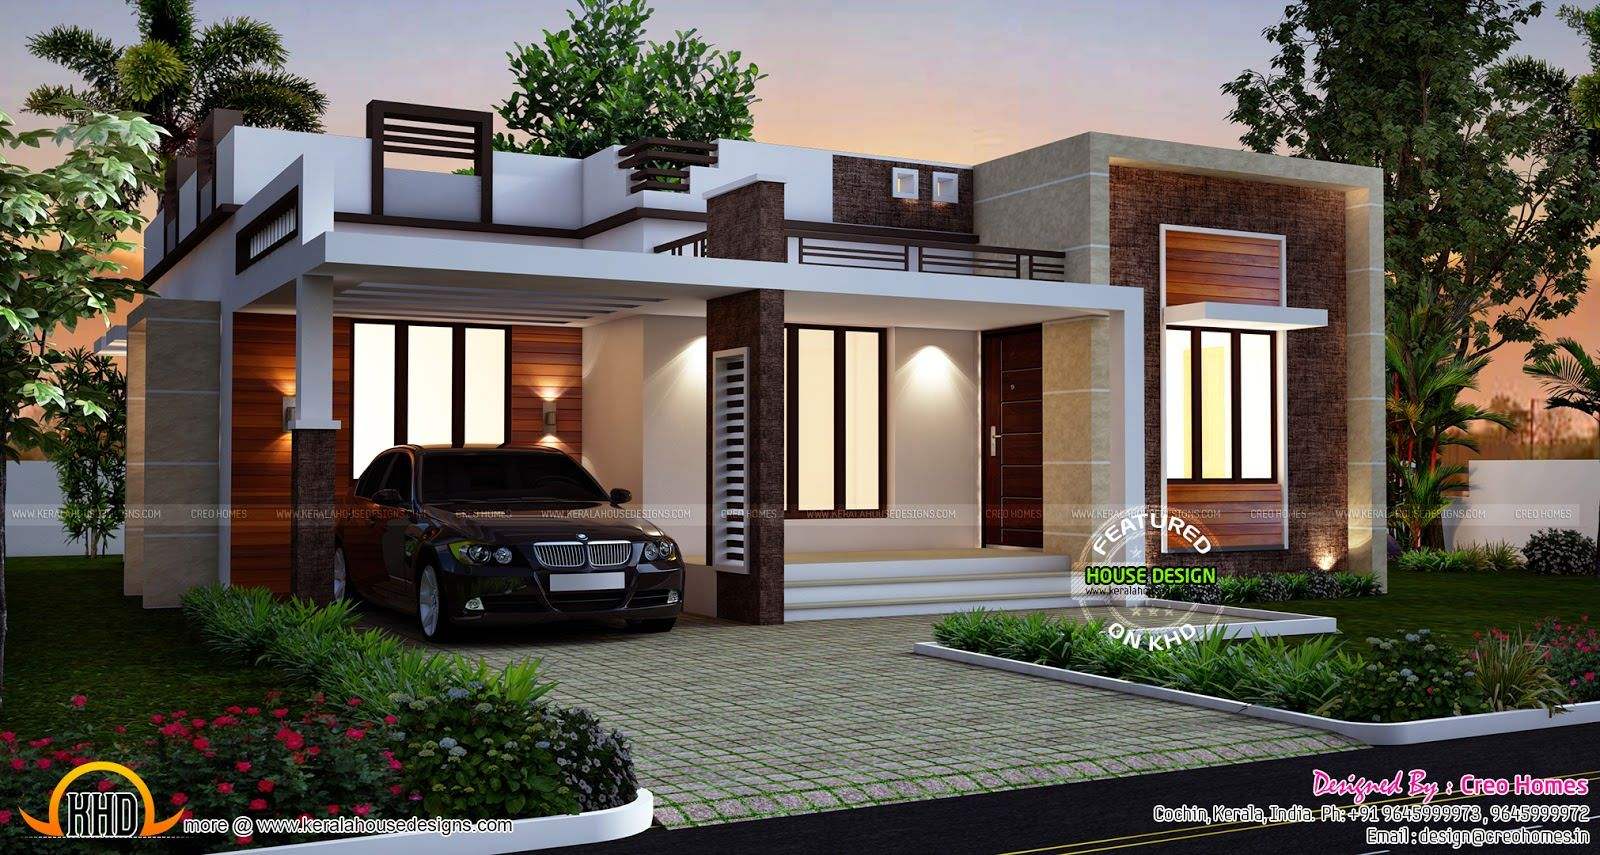 designs homes design single story flat roof house plans inspiration on home front entry designs, window home designs, structural insulated panel home designs, yard home designs, bathroom home designs, conservatory home designs, gable roof home designs, floor home designs, building home designs, high roof home designs, steep roof home designs, architectural home designs, landscaping home designs, hipped roof home designs, steel roof home designs, 2015 home designs, gambrel roof home designs, sod roof home designs, flat home plans, butterfly roof home designs,